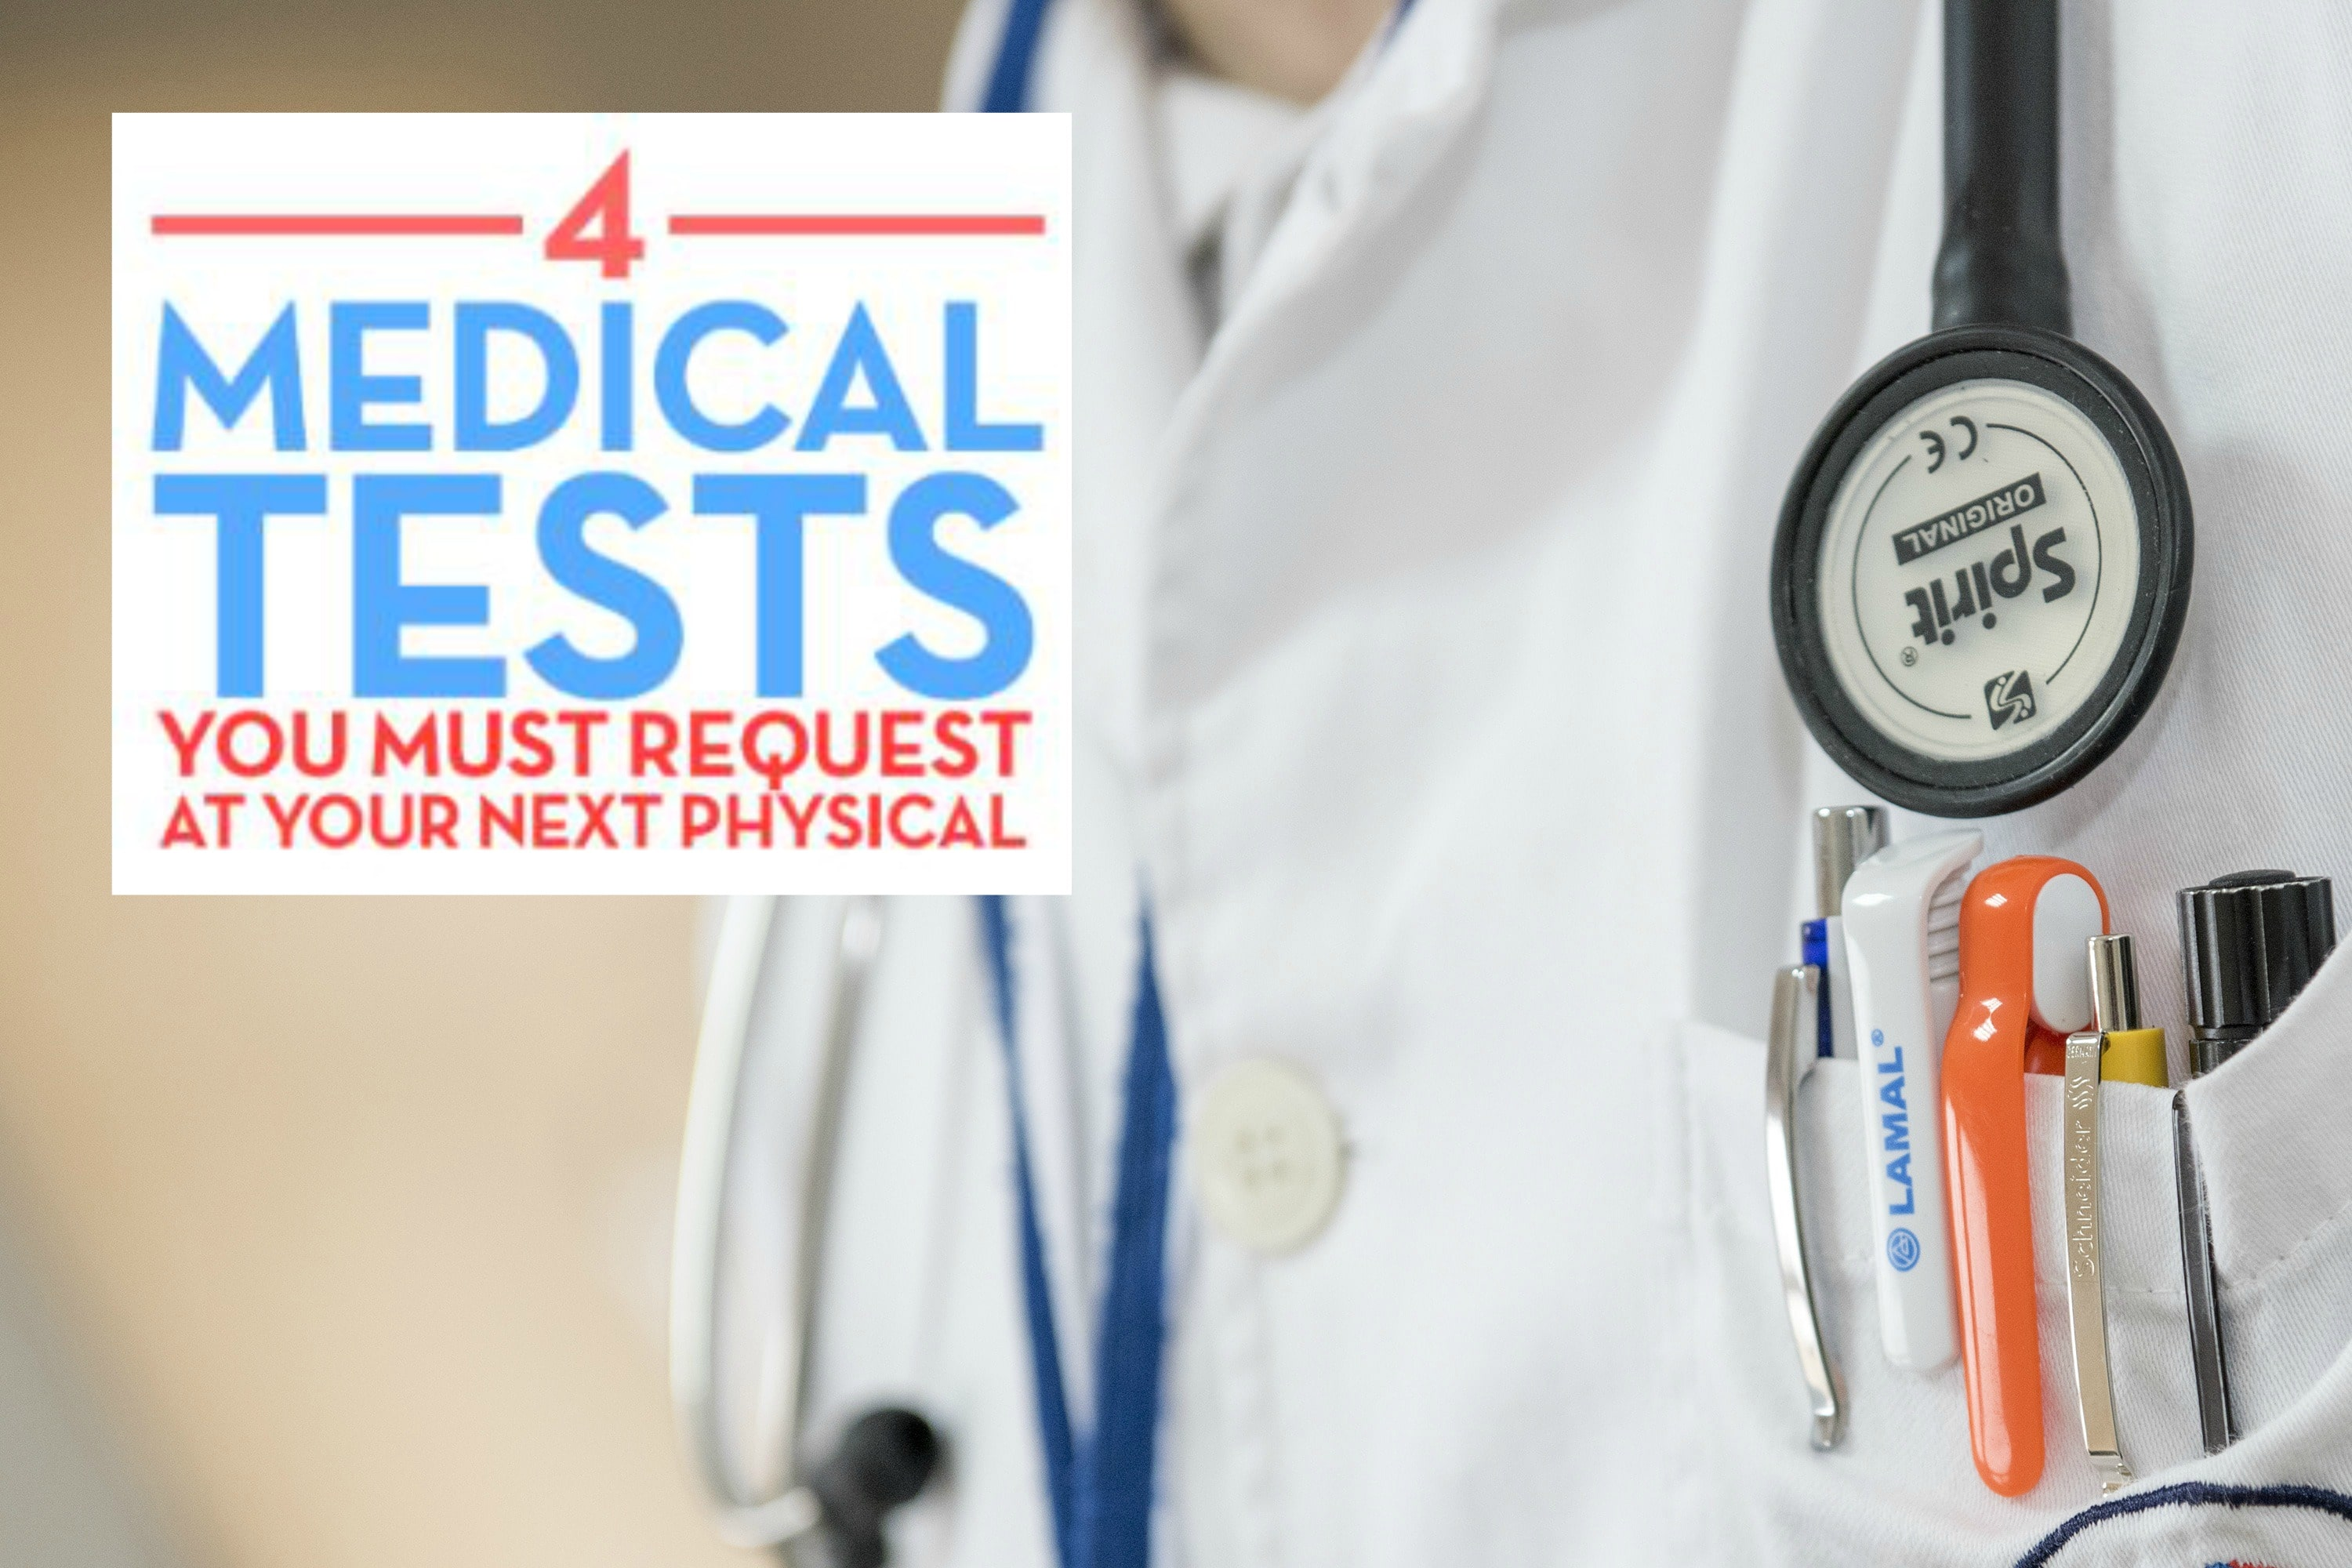 4 medical tests to request at your next physical